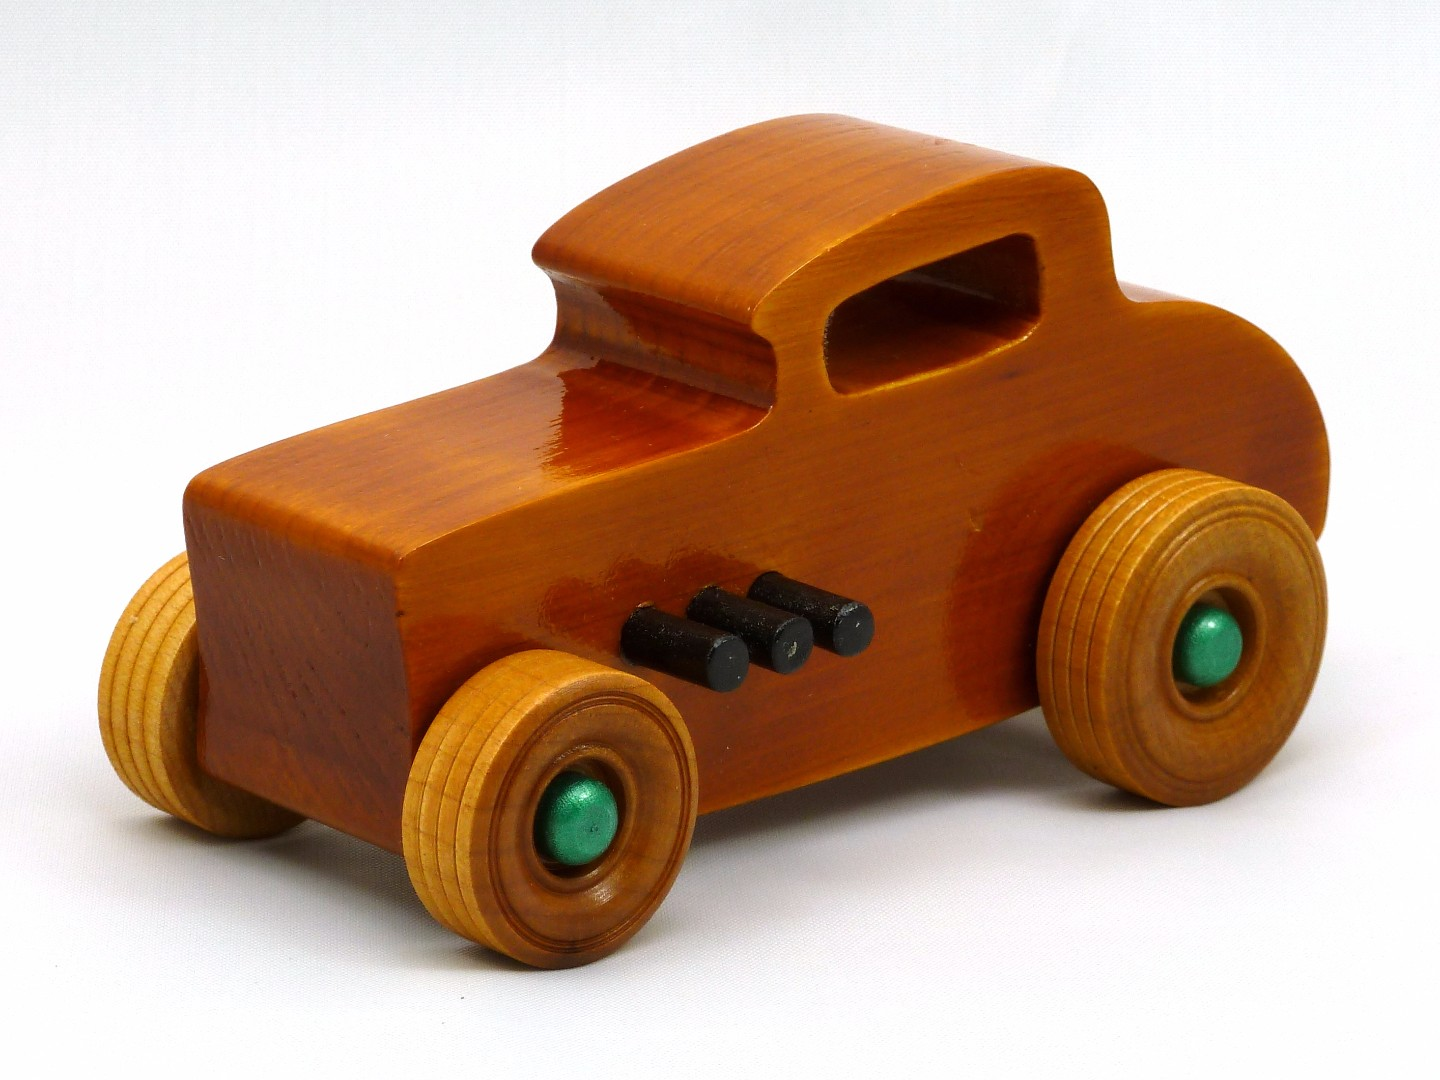 20170902-134138 Wooden Toy Car - Hot Rod Freaky Ford - 32 Deuce Coupe - Pine - Amber Shellac - Metallic Green.jpg